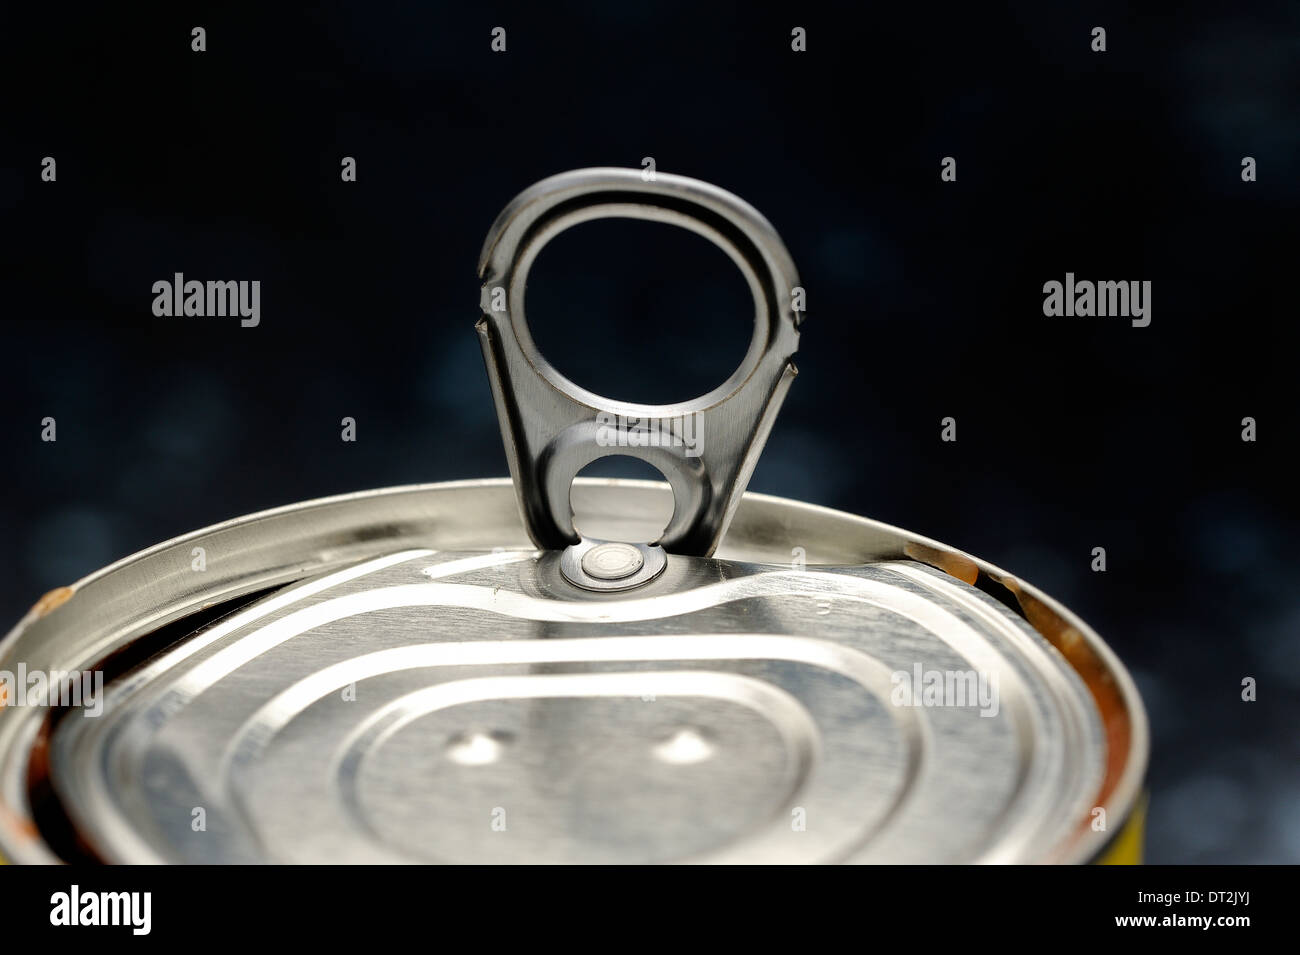 Tin can Ring pull - Stock Image